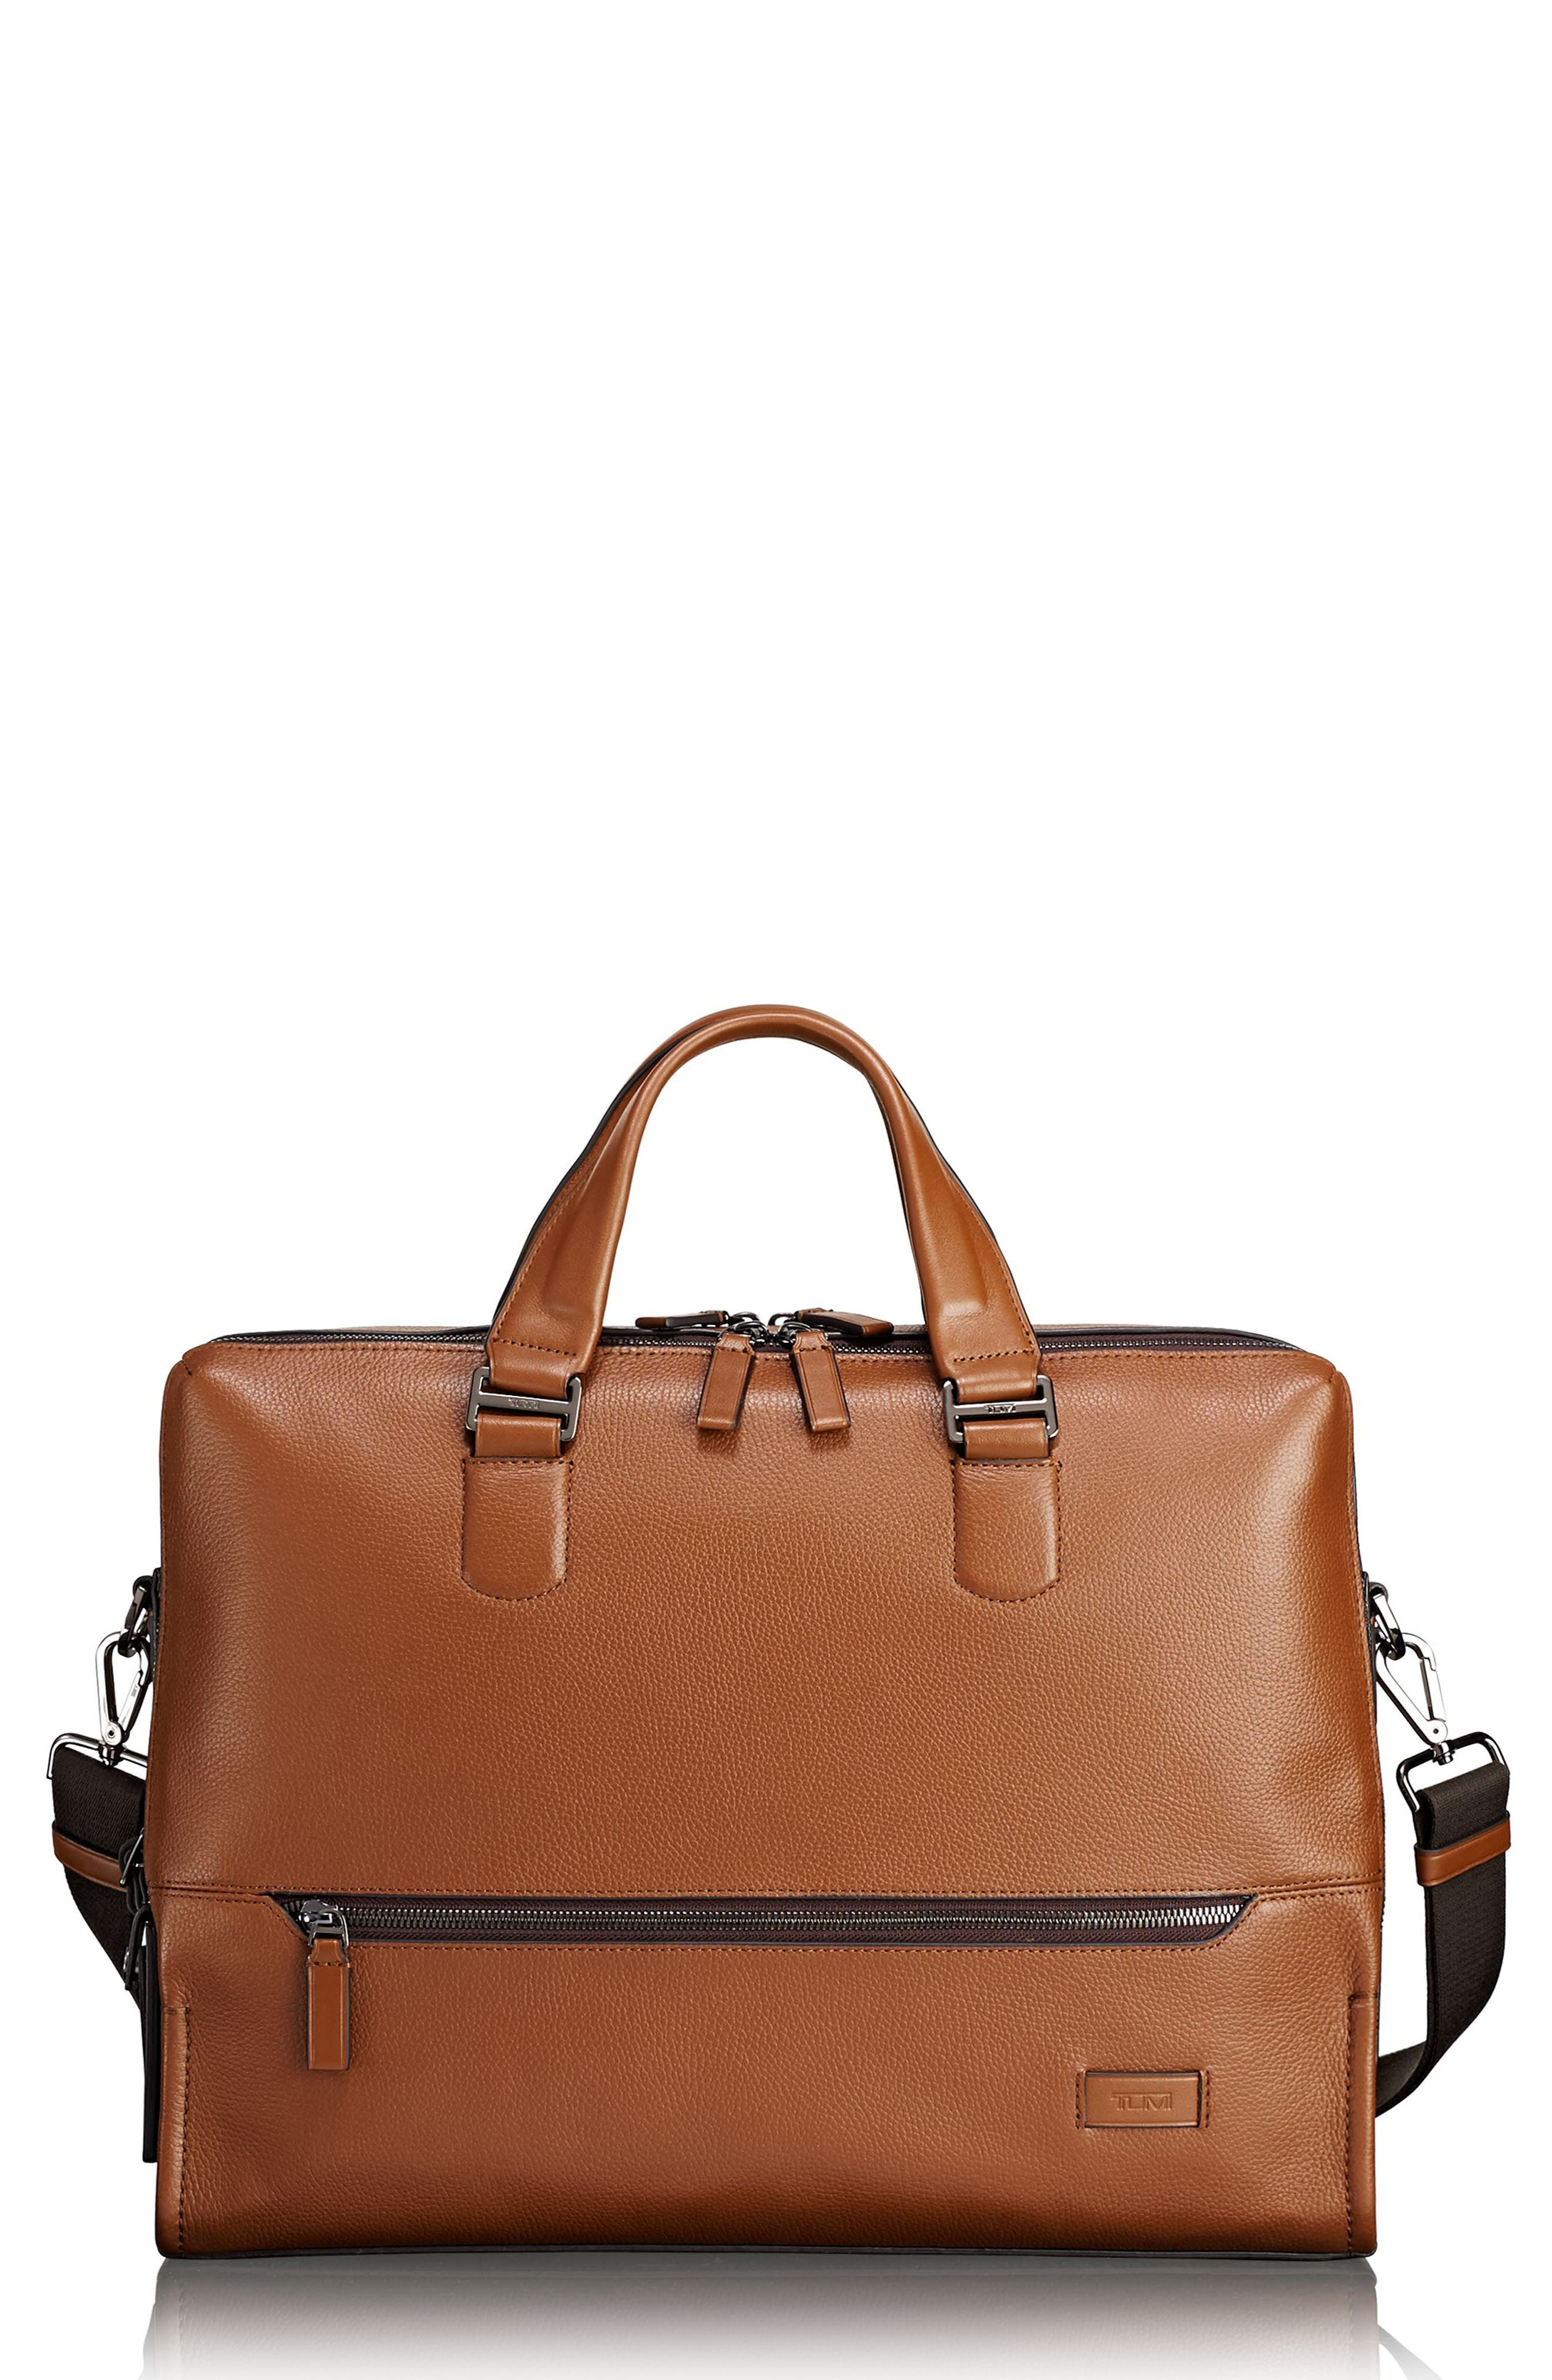 Harrison - Horton Briefcase,                             Main thumbnail 1, color,                             Umber Pebbled